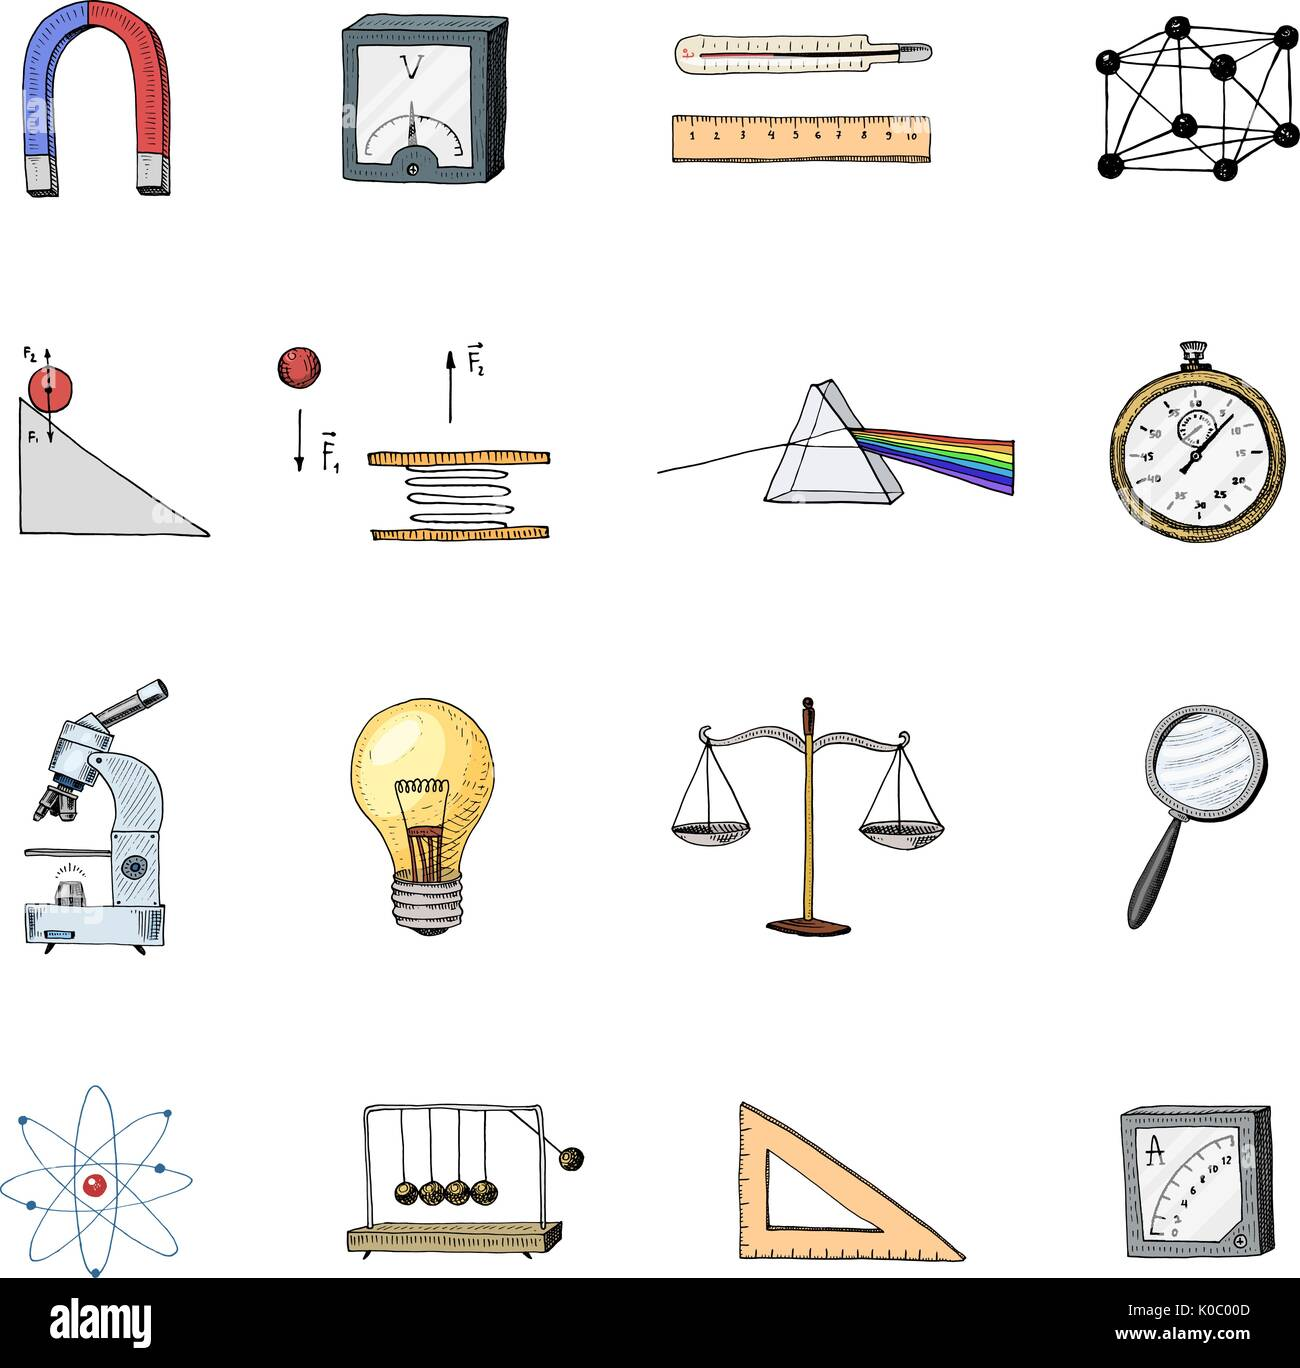 lightbulb and prism, crystal lattice and scale with